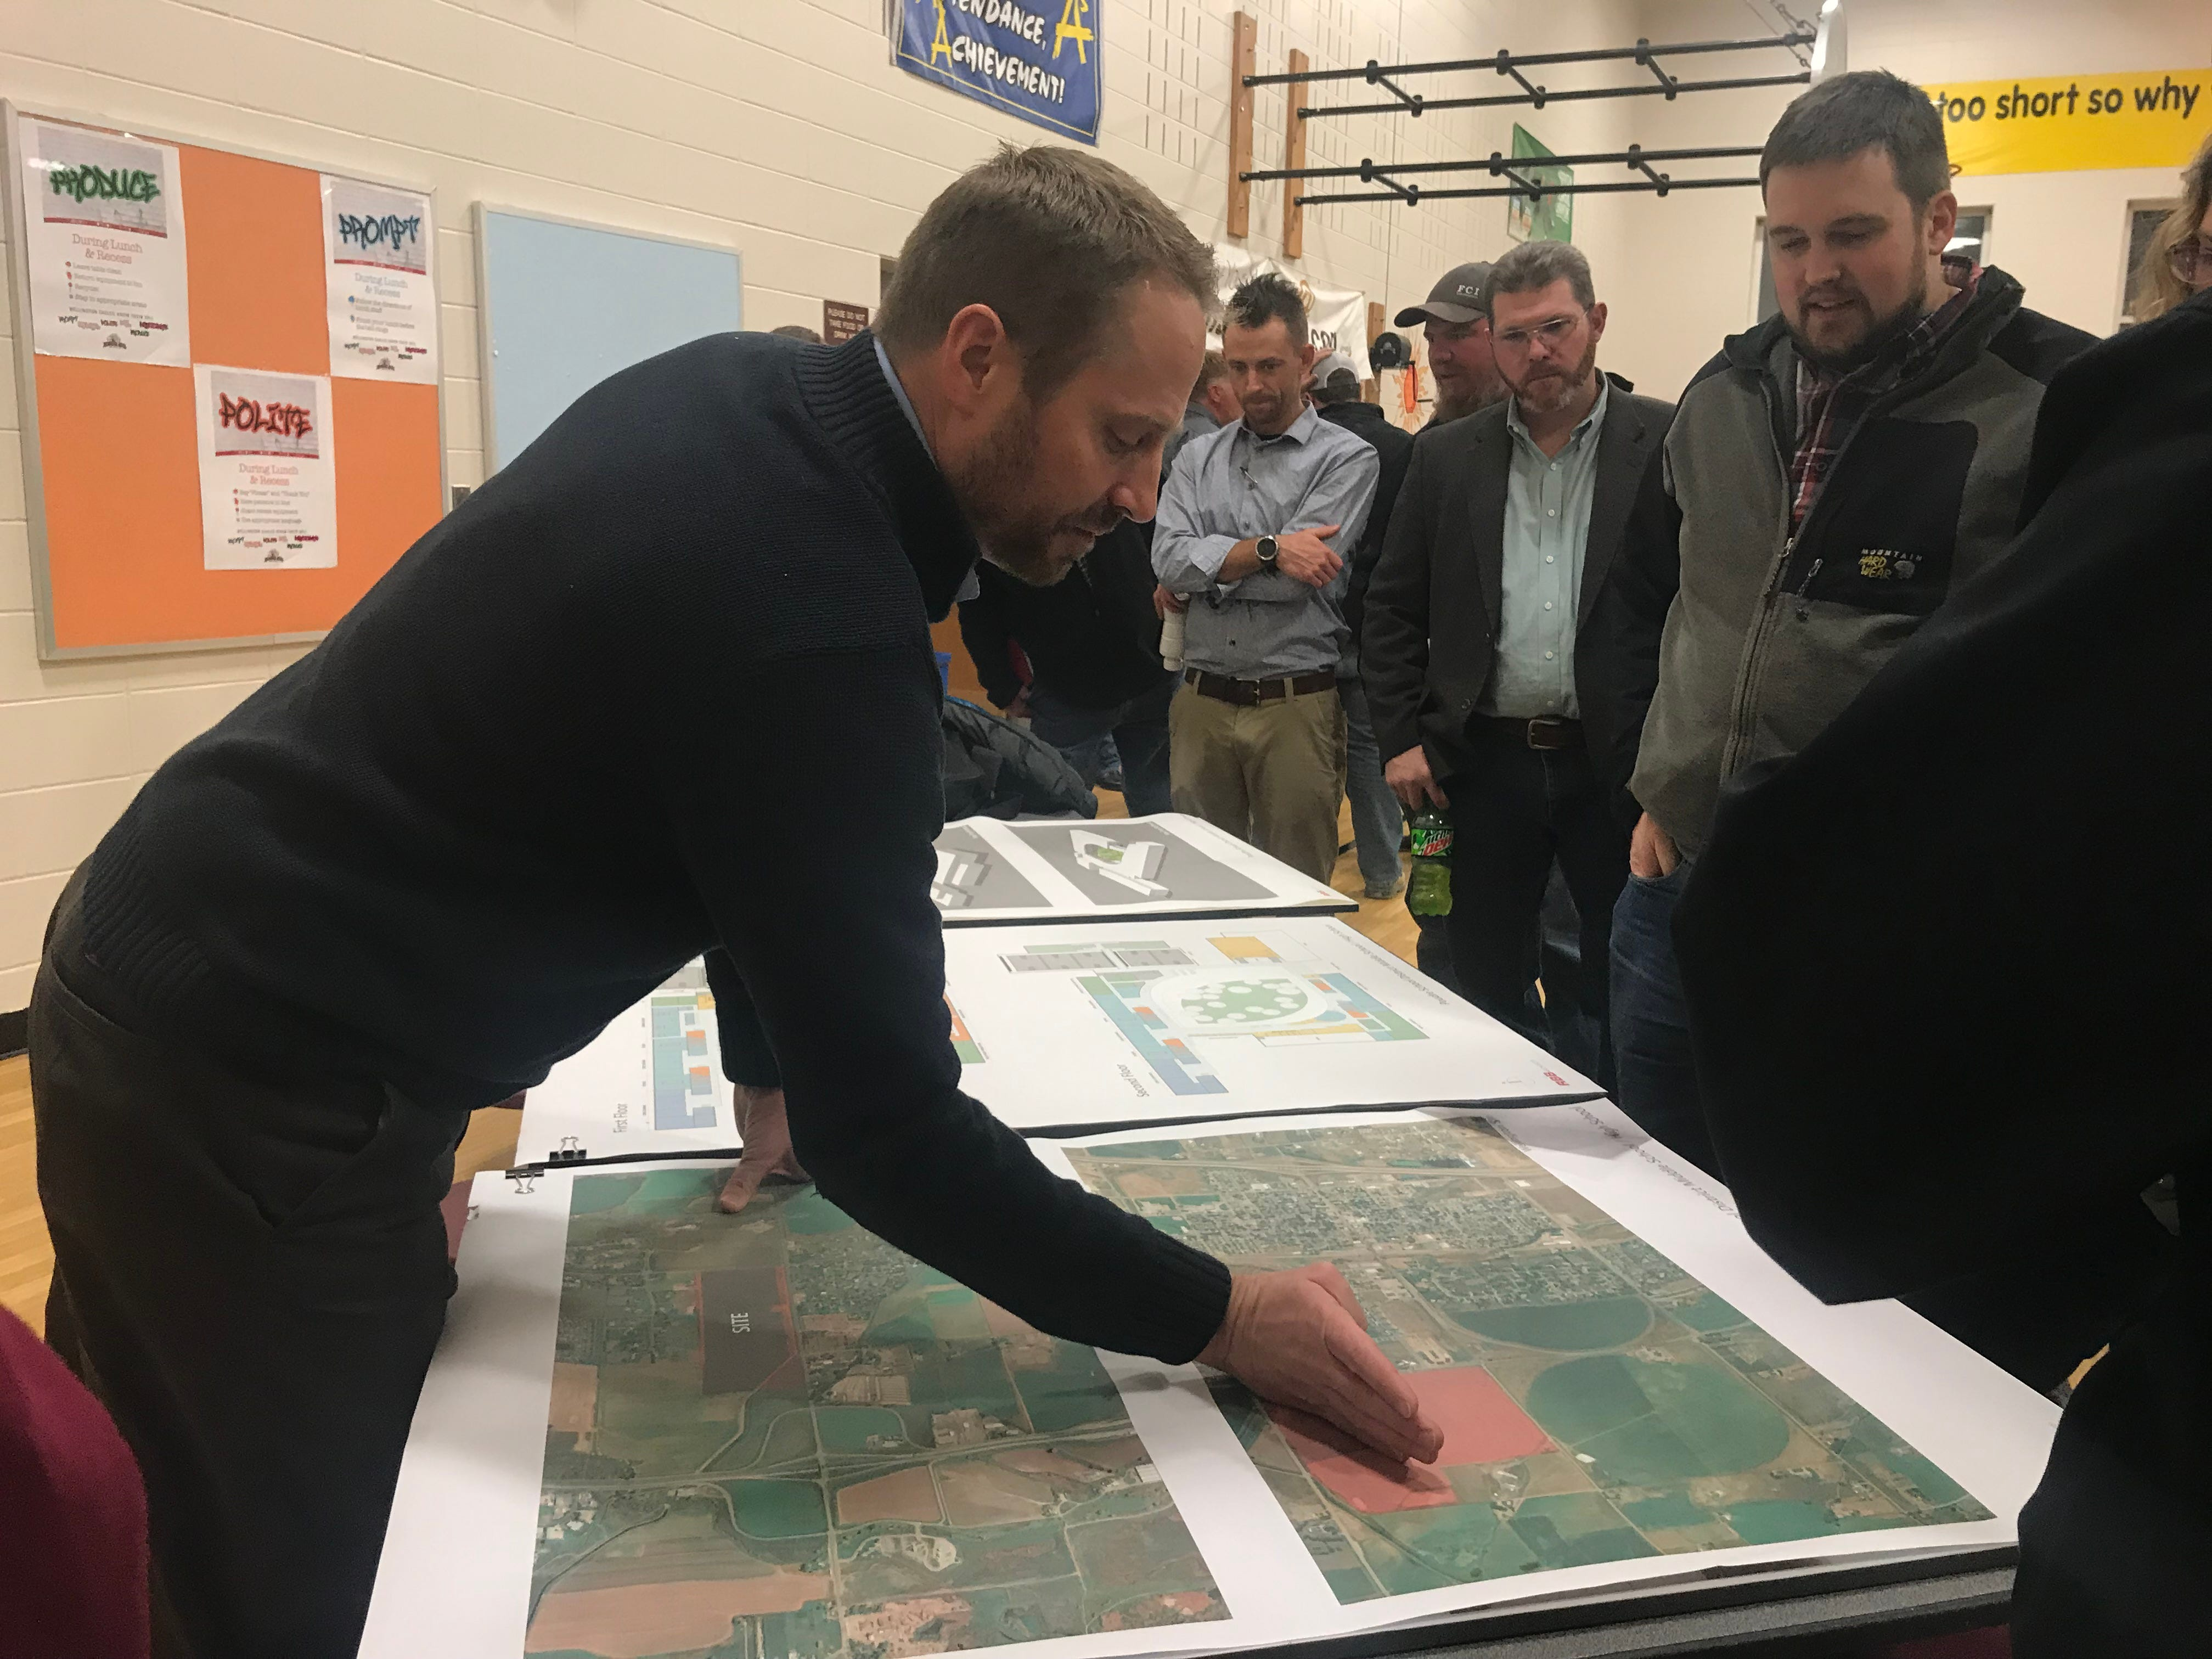 New schools in PSD begin to take shape as community sees early drawings